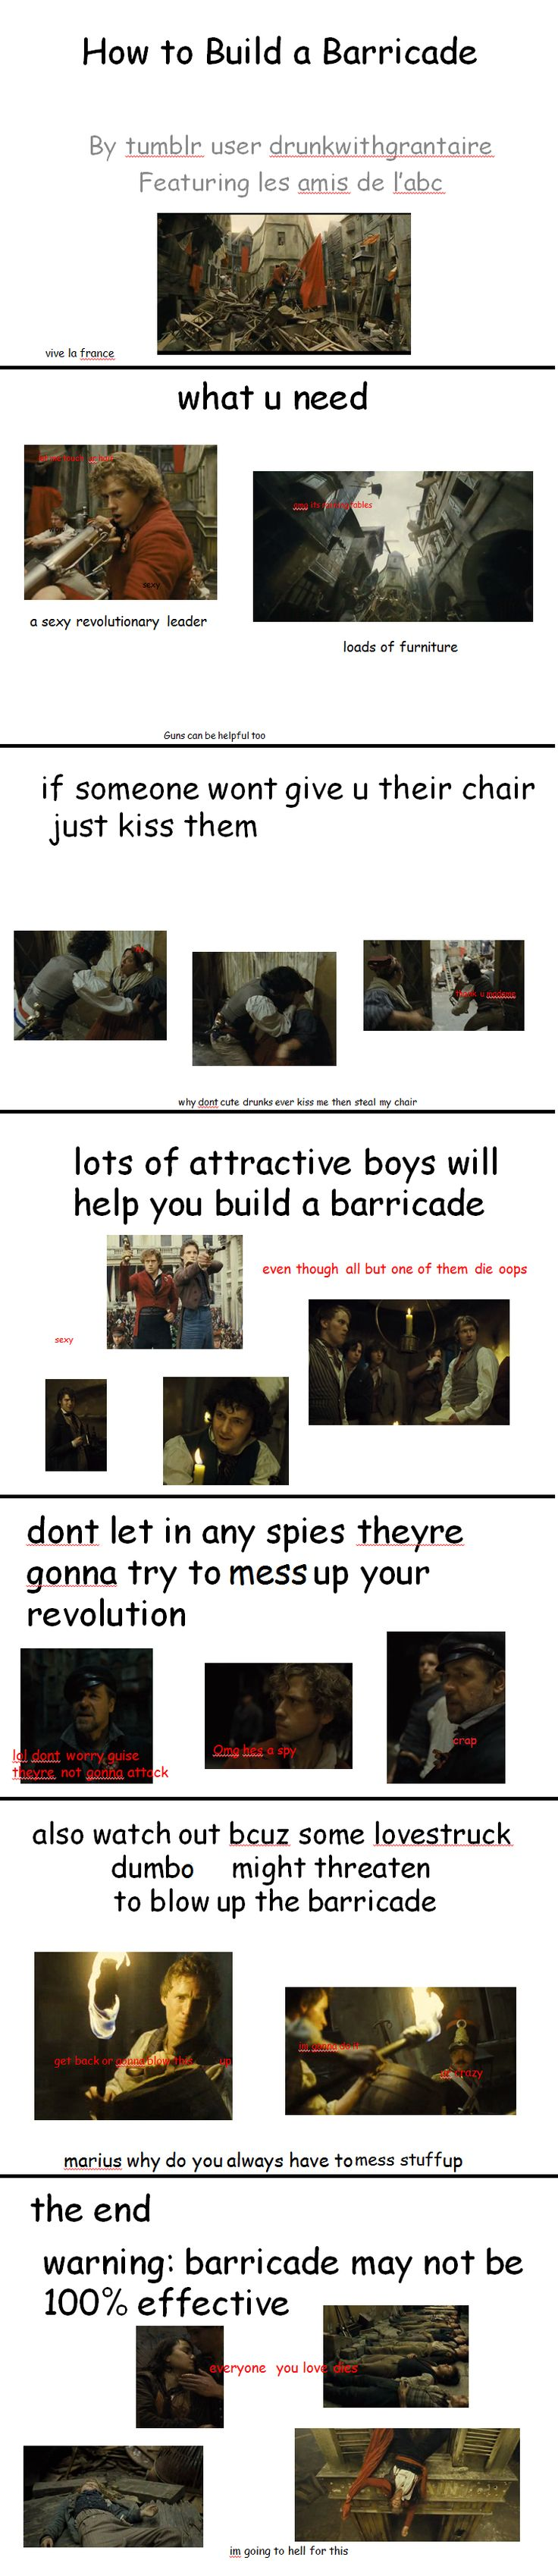 "How to Build a Barricade... The comment at the end is the reason why i repinned this ""I'm going to hell for this"" lol!!!"